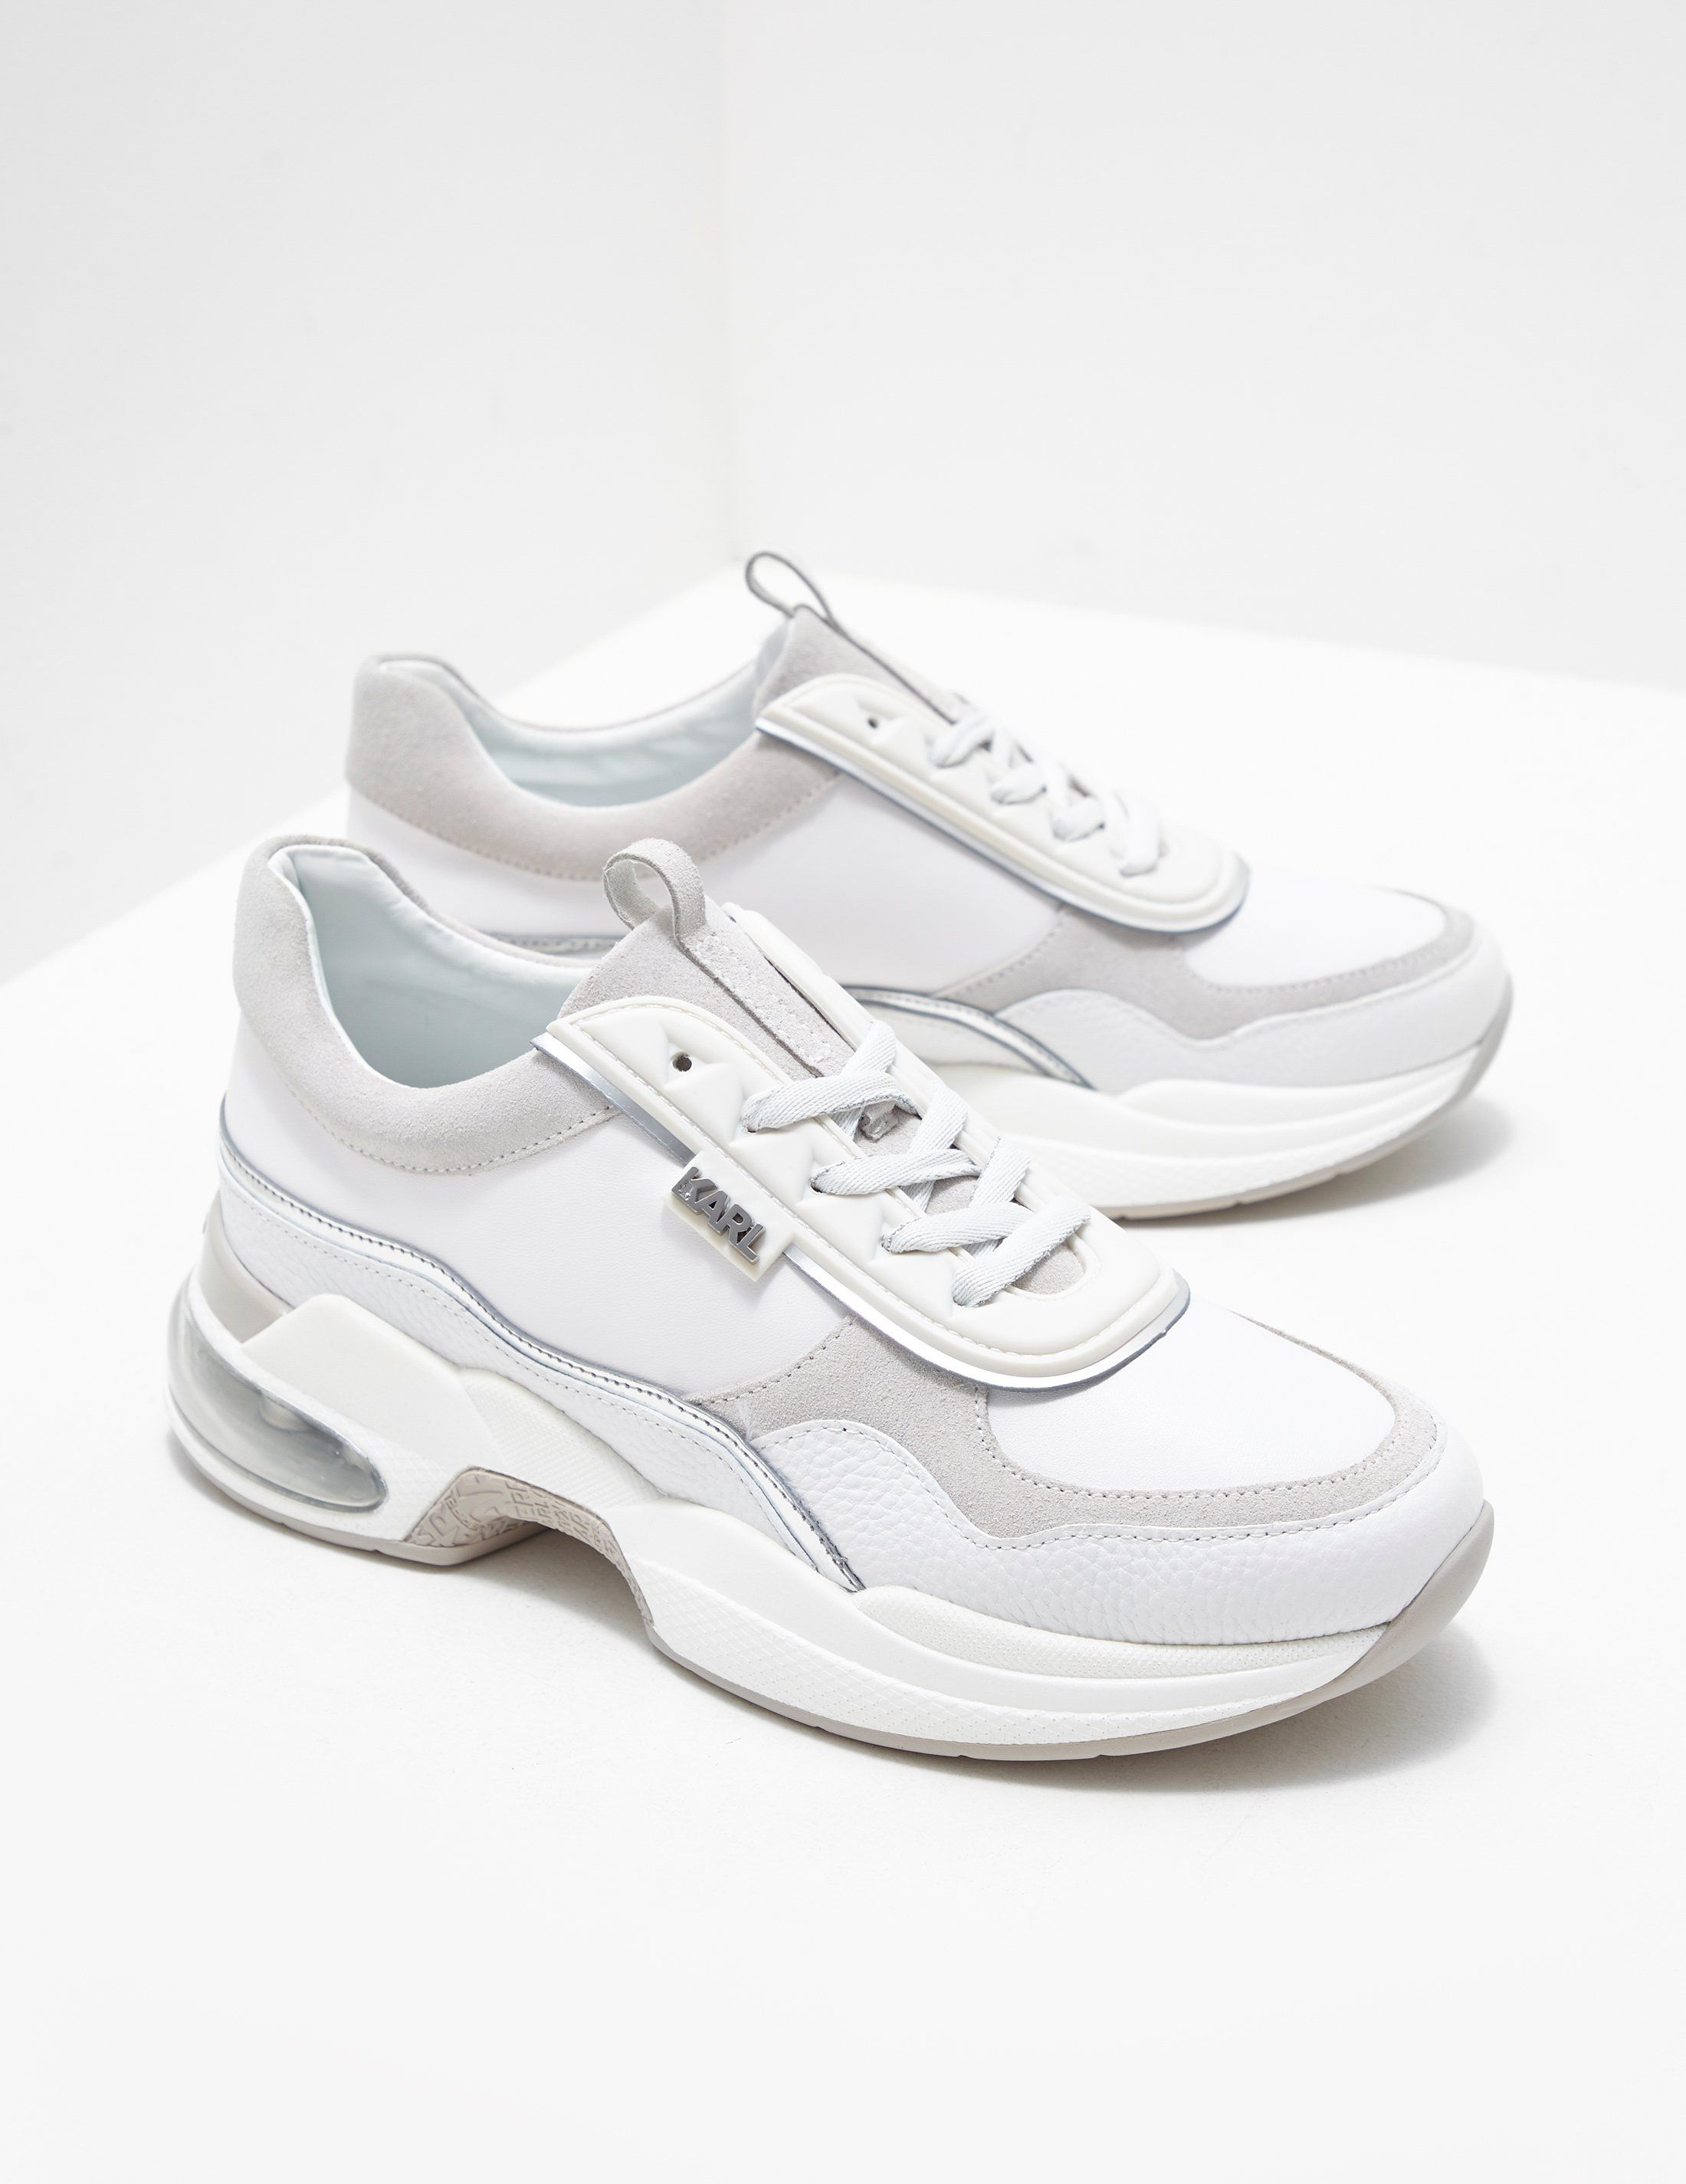 Karl Lagerfeld Vent Trainers